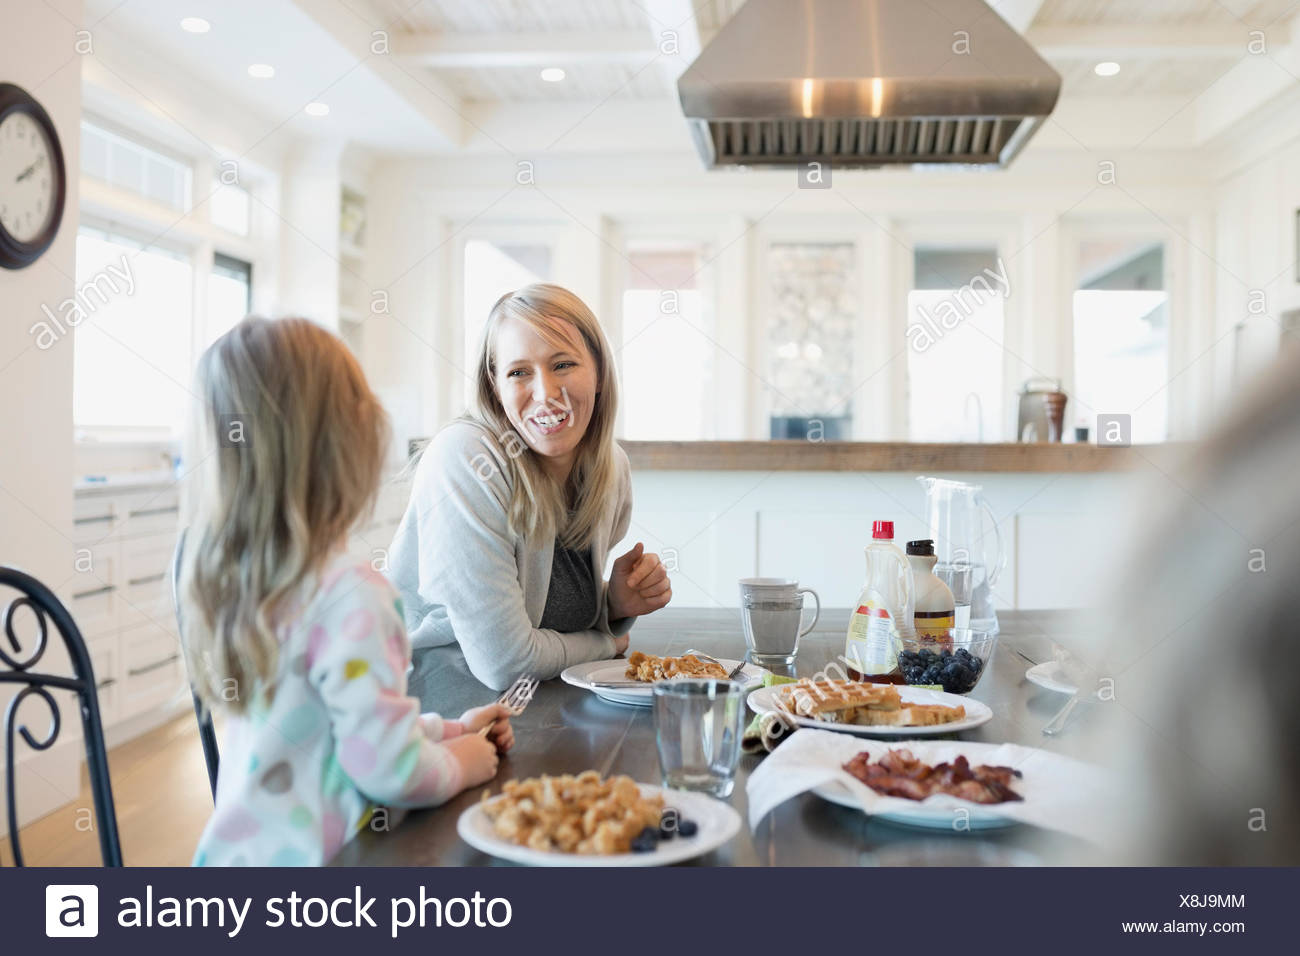 Mother and daughter eating waffles at breakfast table - Stock Image